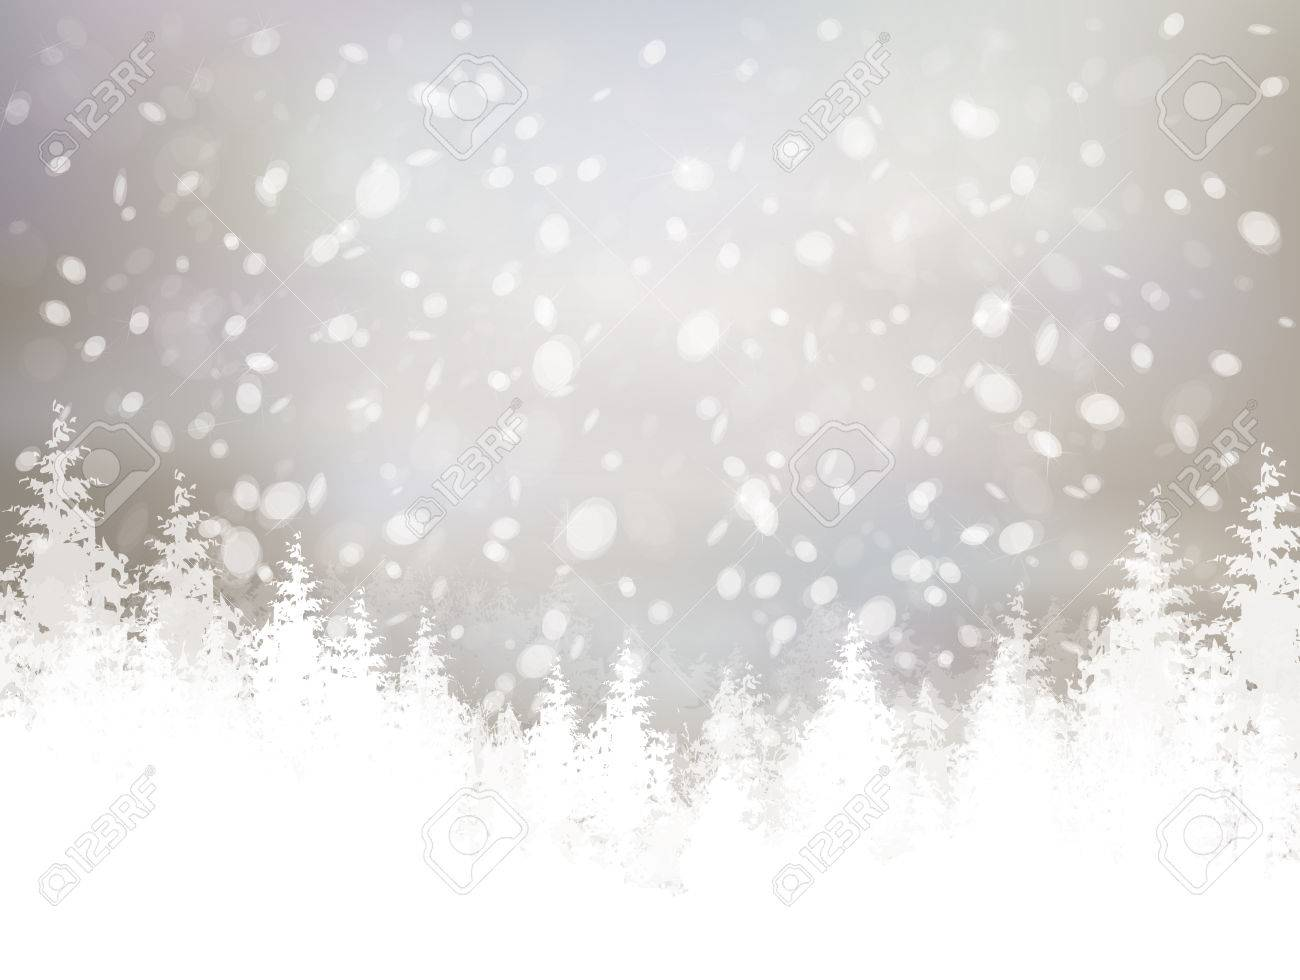 winter scene with snowfall and forest background. - 50145409